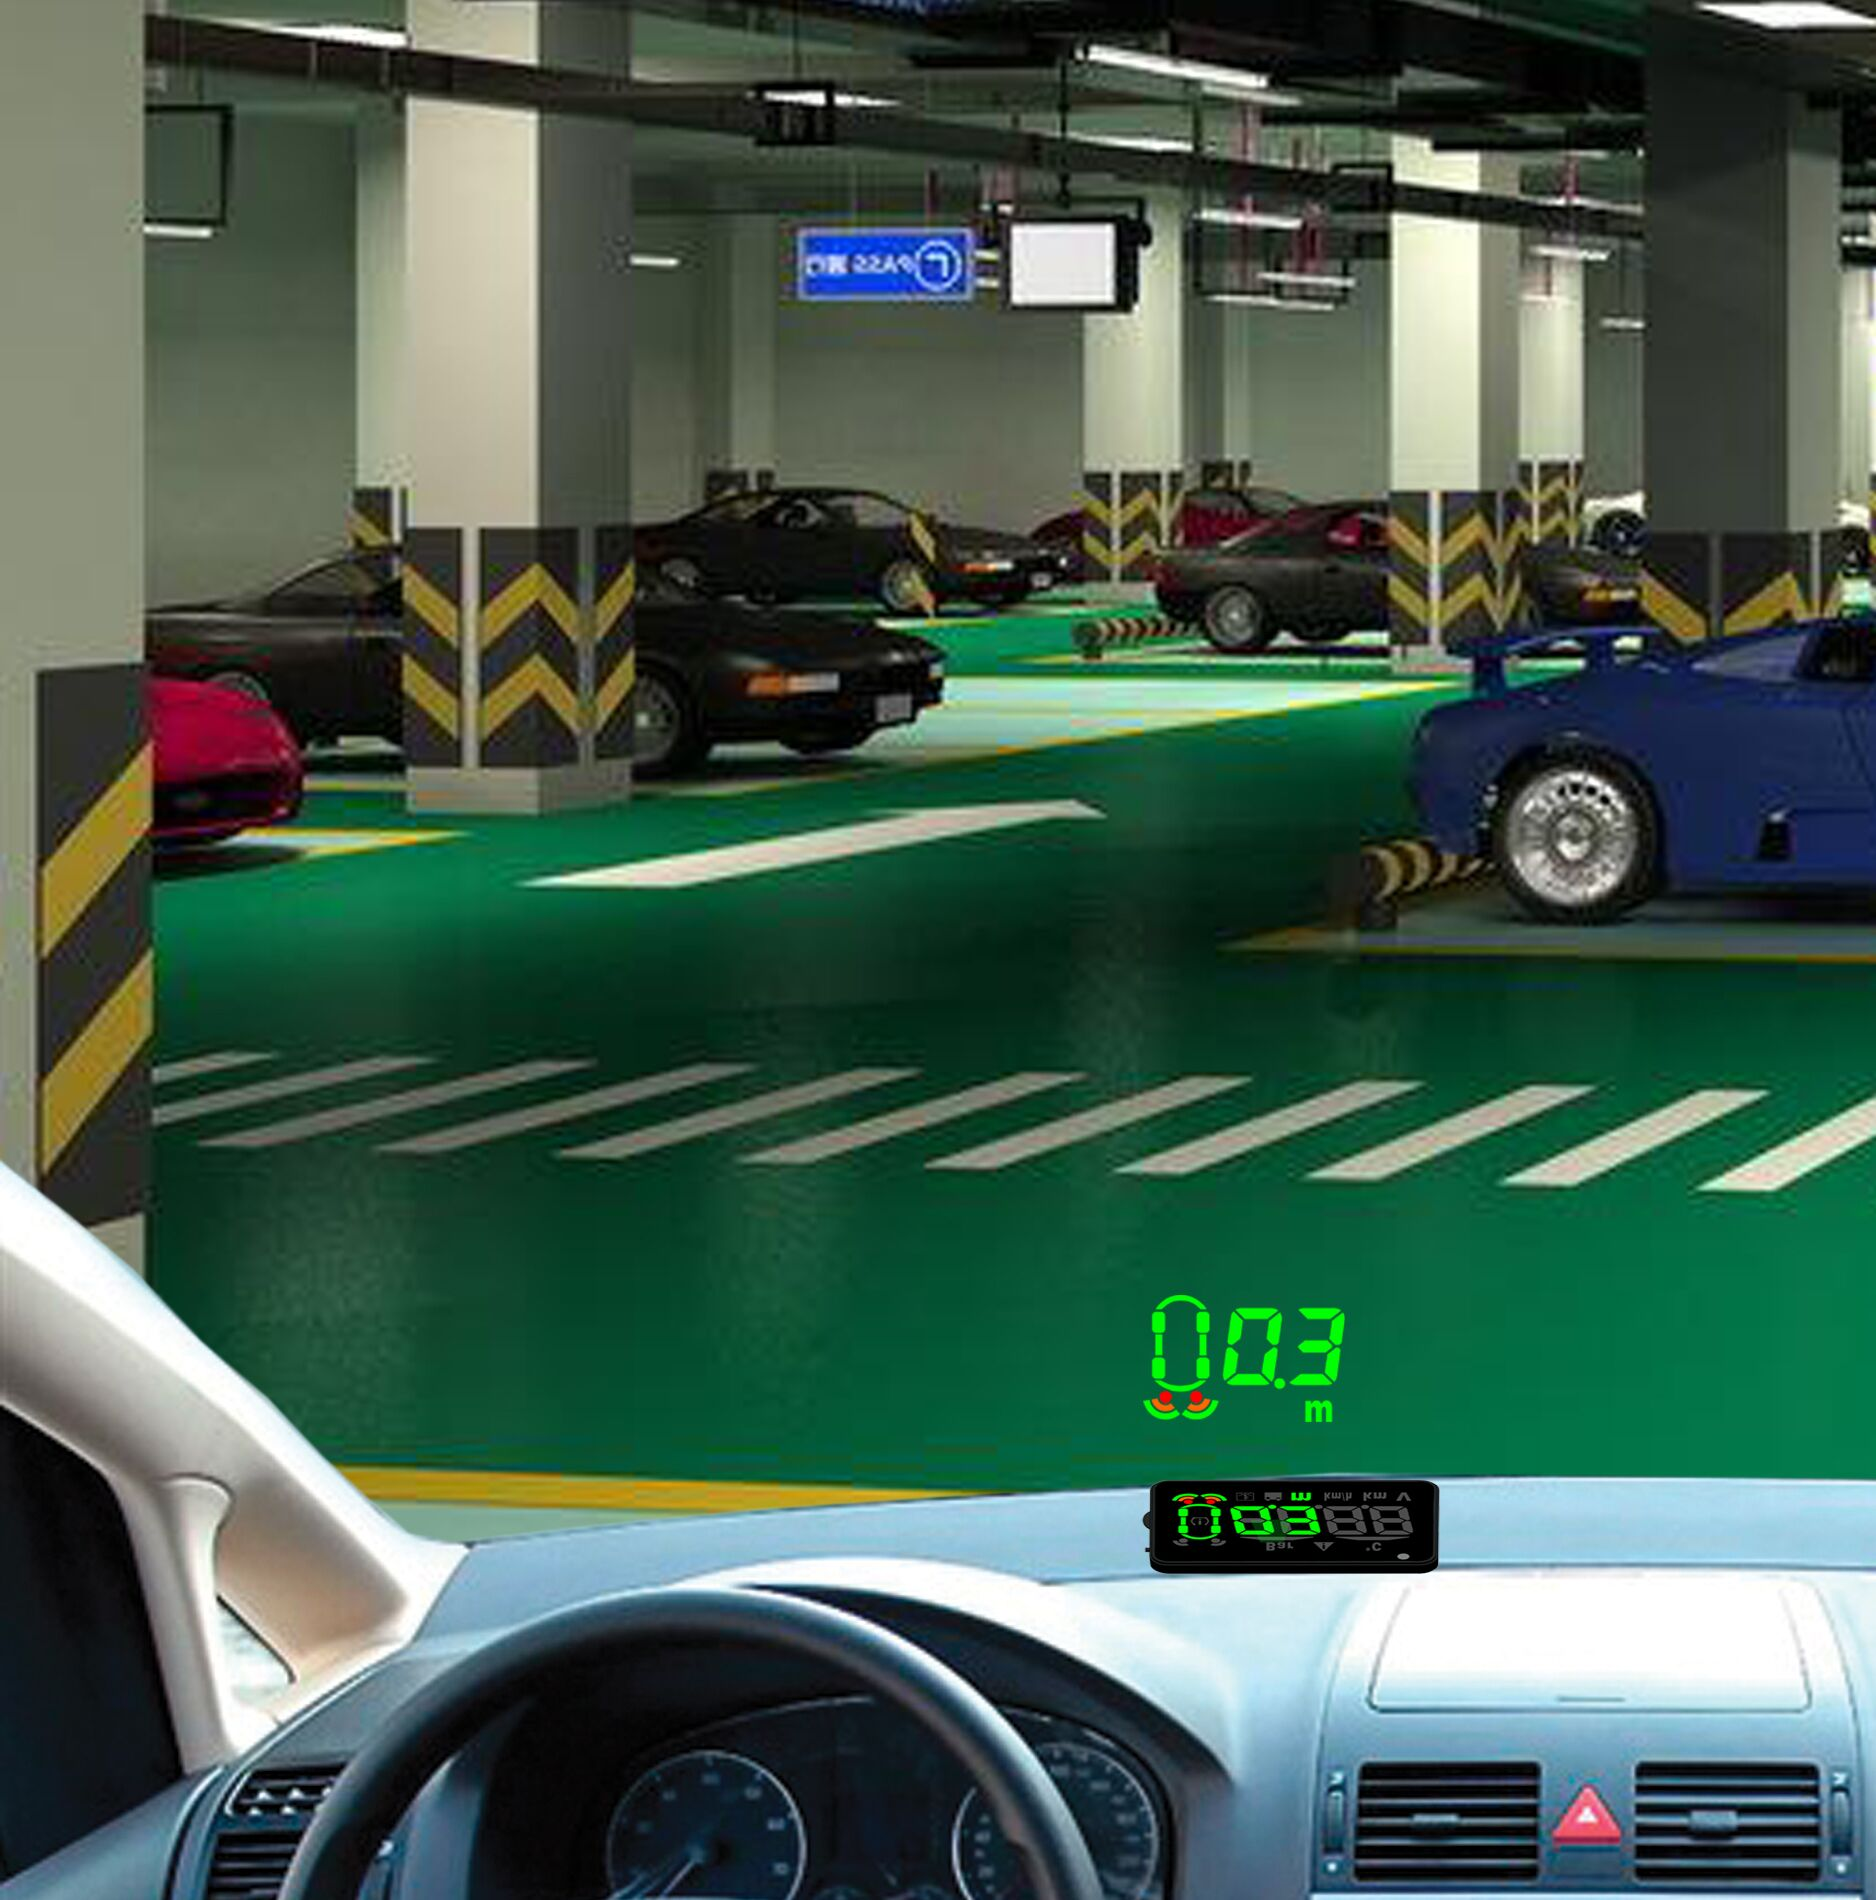 OBD-II Head-up Display with 4 rear wireless parking sensor